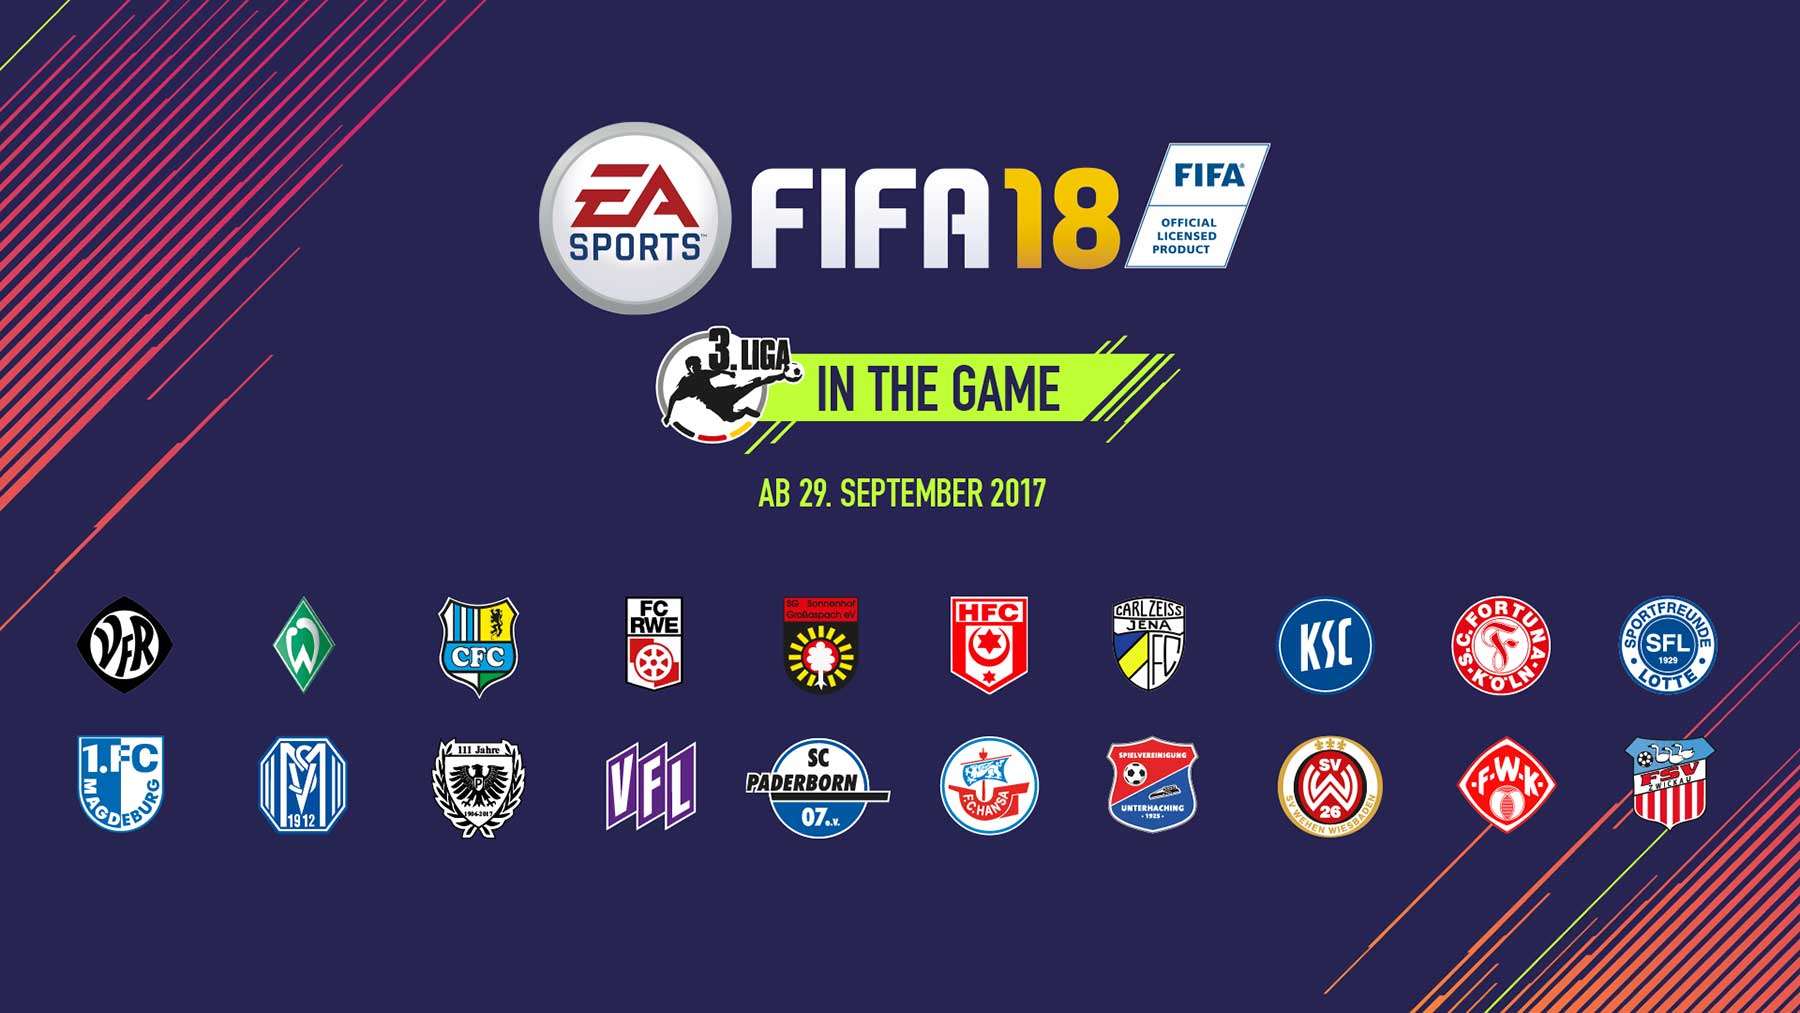 Review: Fifa 18 fifa-18-review_06